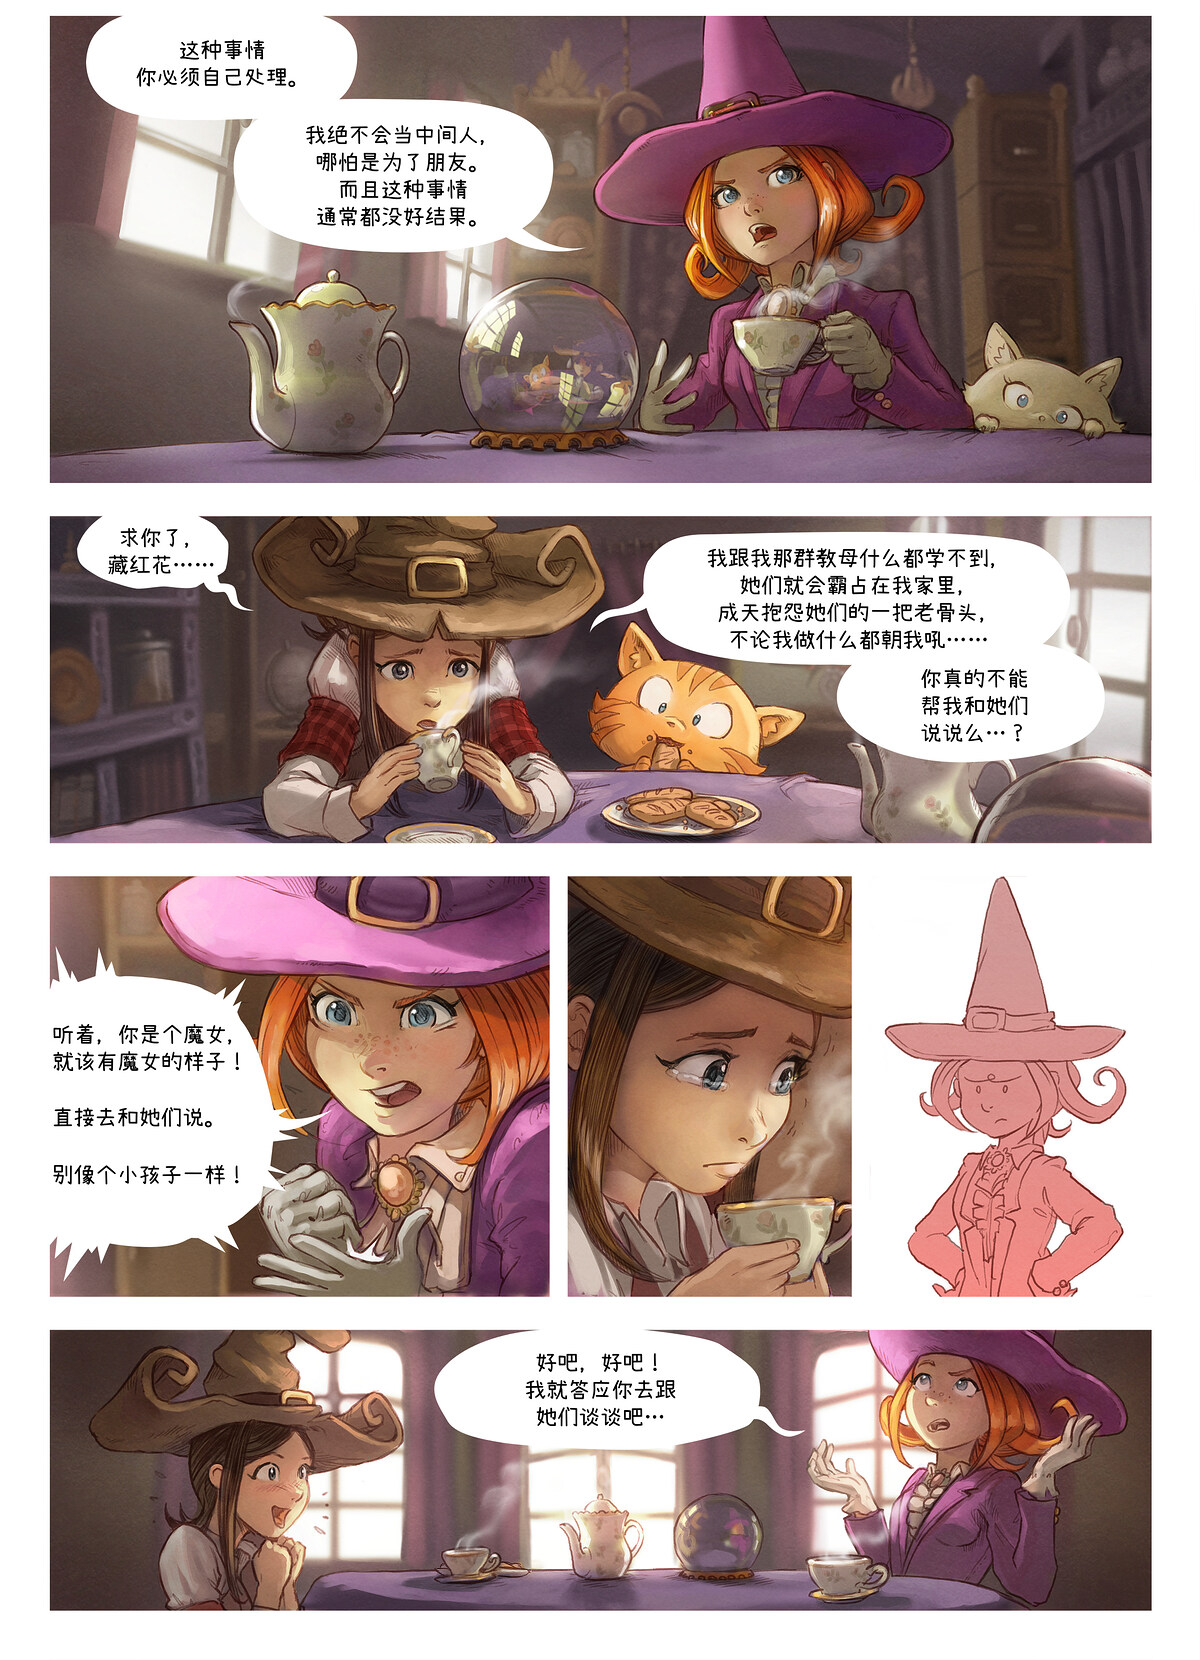 A webcomic page of Pepper&Carrot, 漫画全集 16 [cn], 页面 2